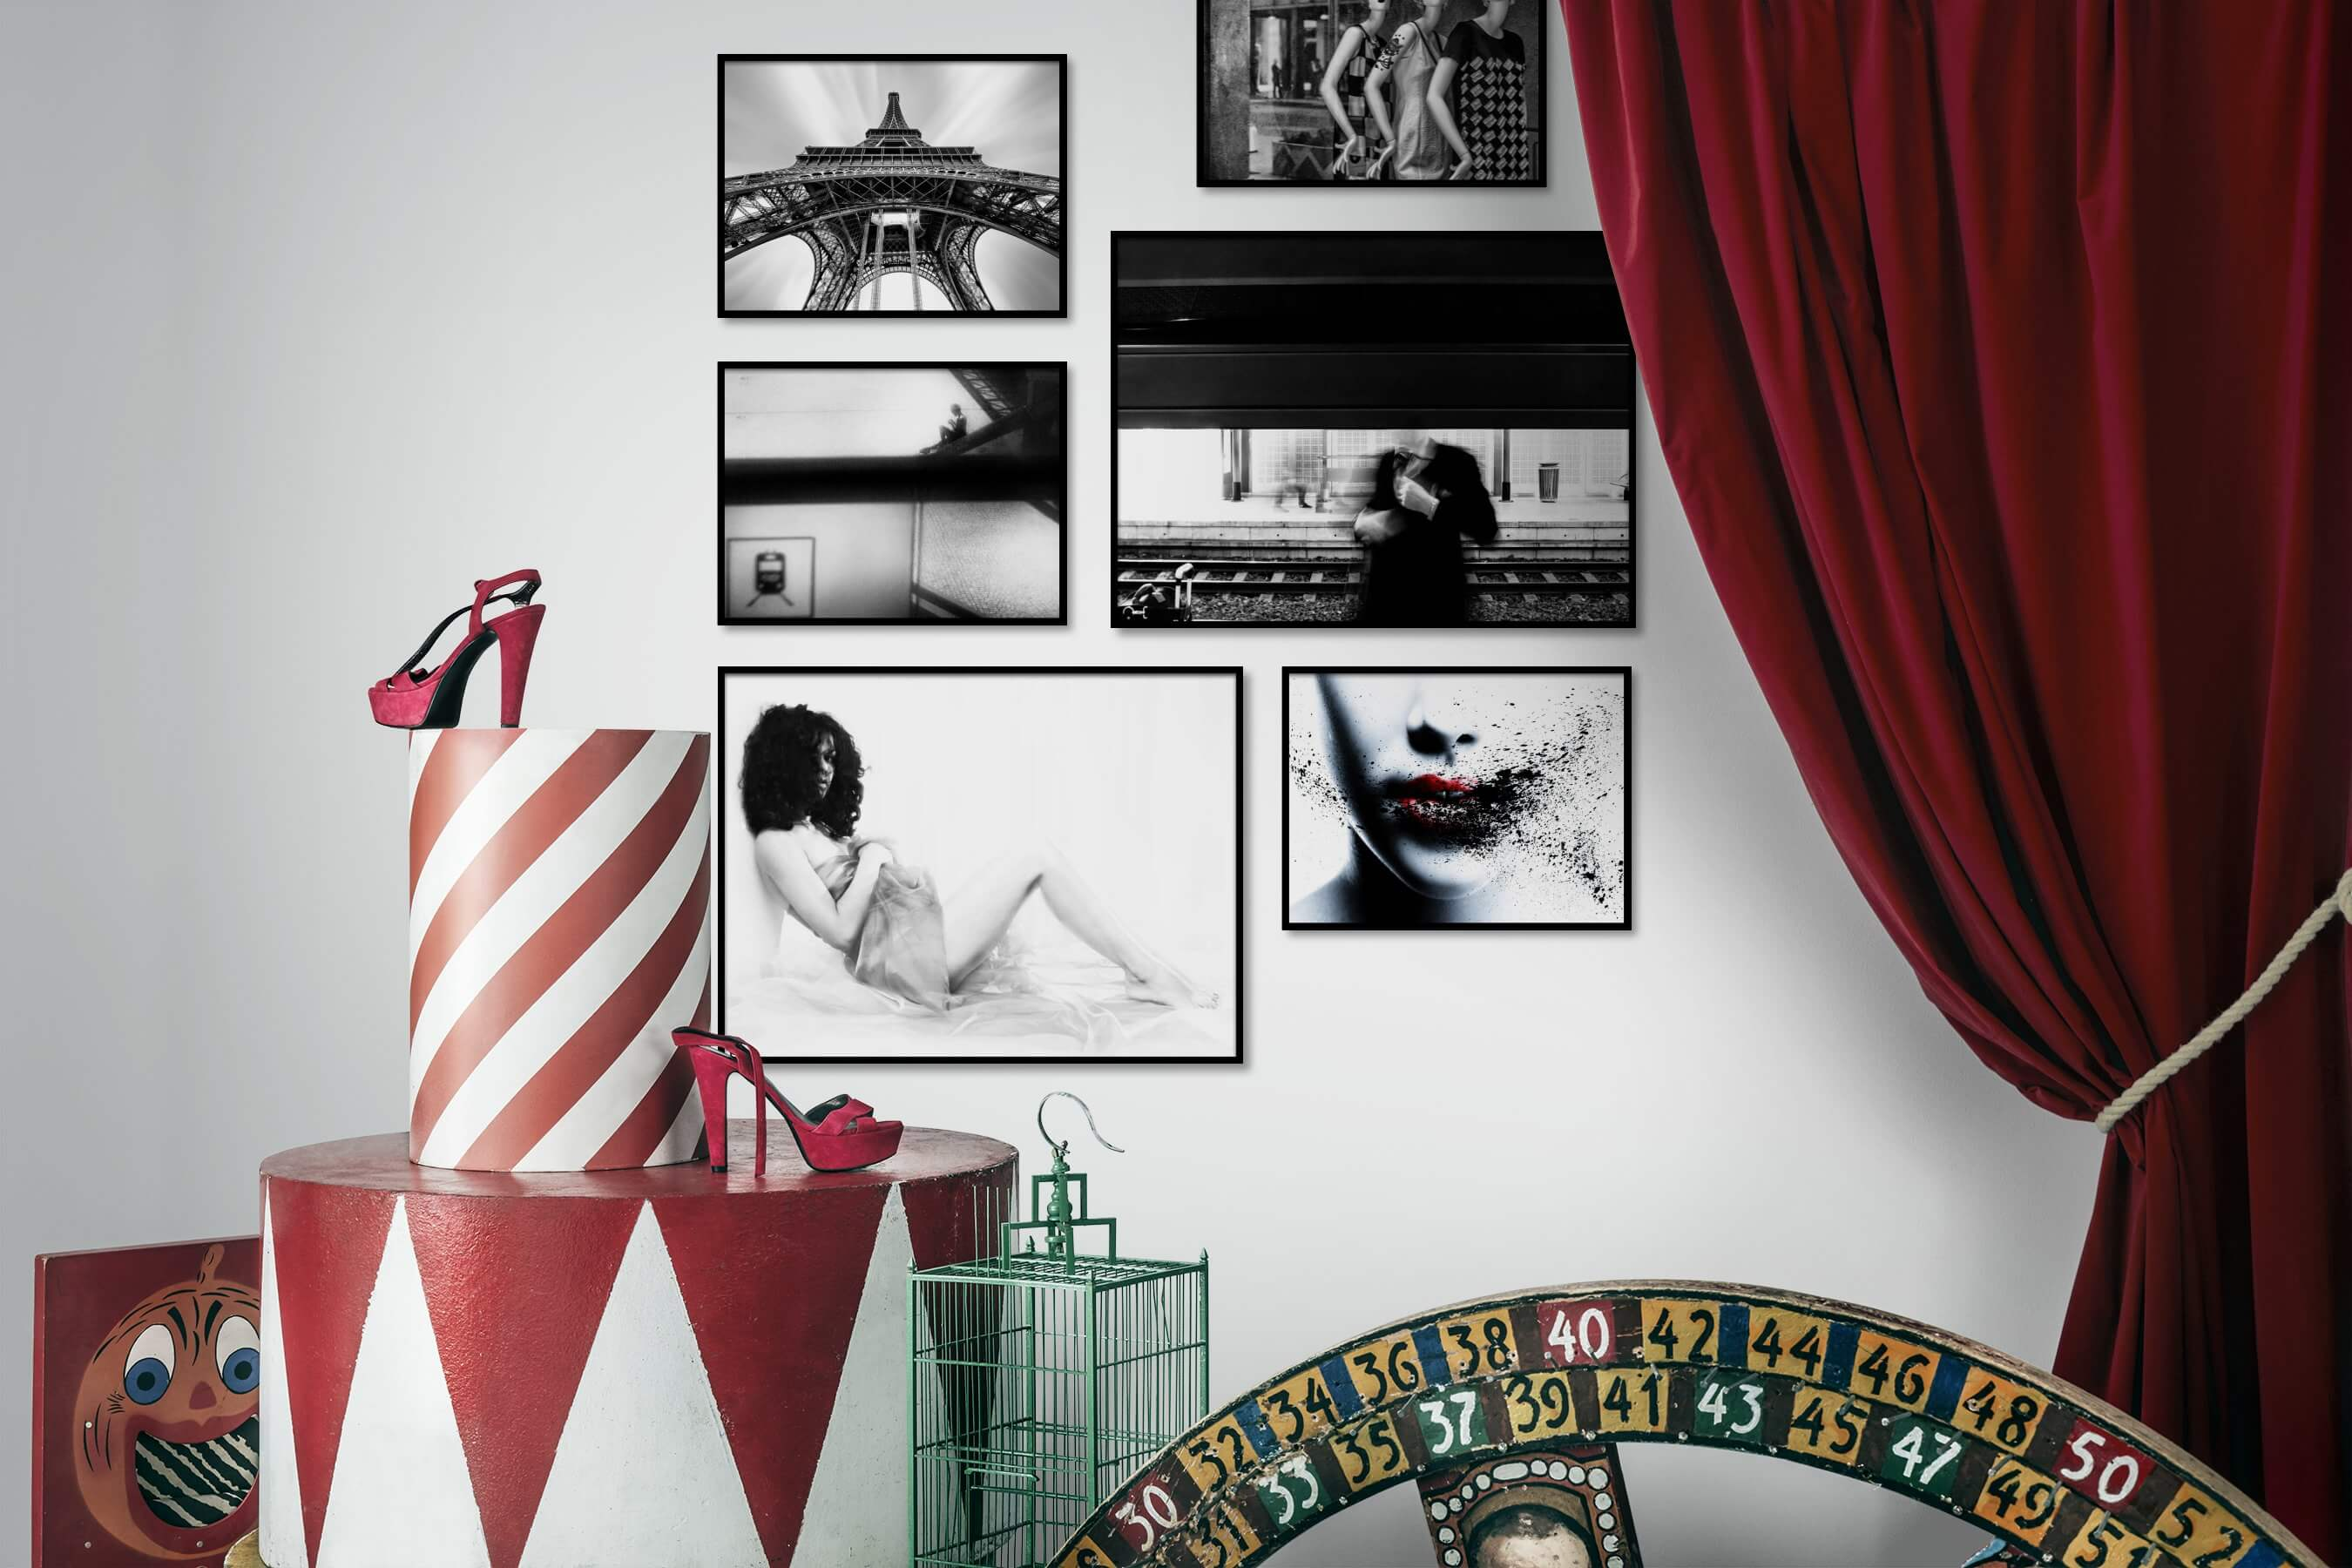 Gallery wall idea with six framed pictures arranged on a wall depicting Black & White, City Life, Fashion & Beauty, Artsy, Bright Tones, and For the Moderate